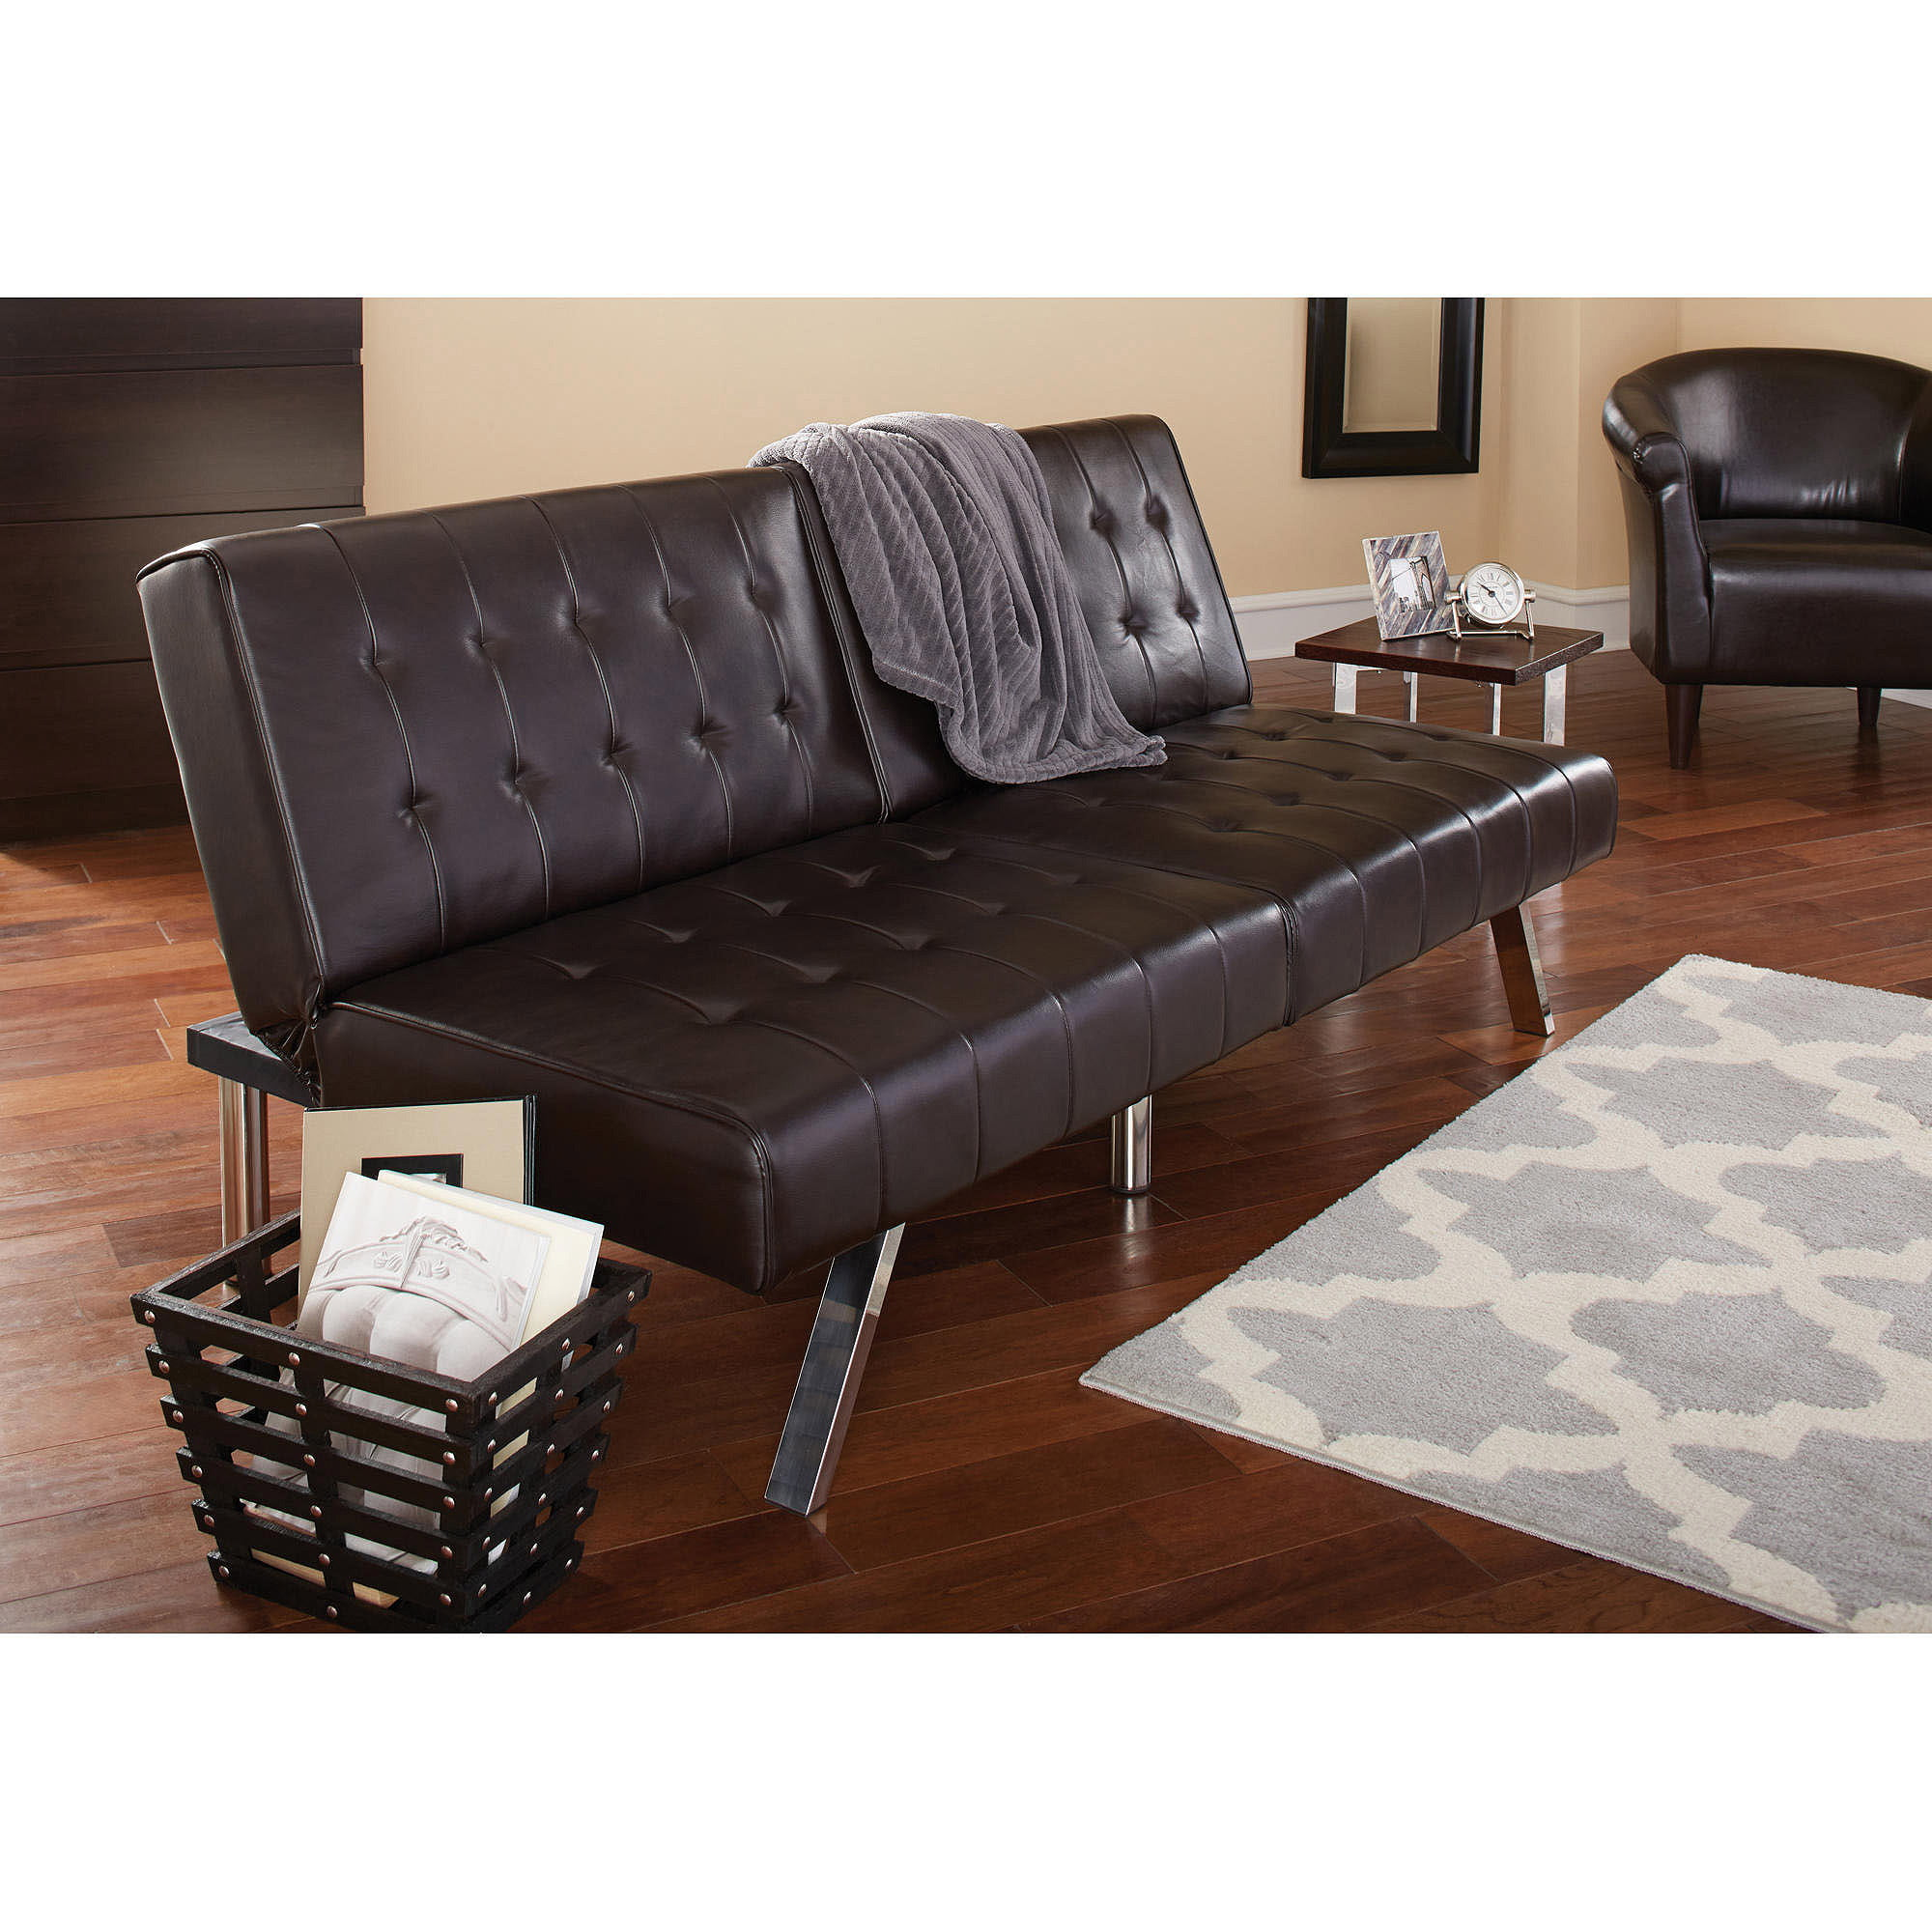 choice itm products faux down less convertible bed w for modern holders black fold sofa best cup futon leather futons